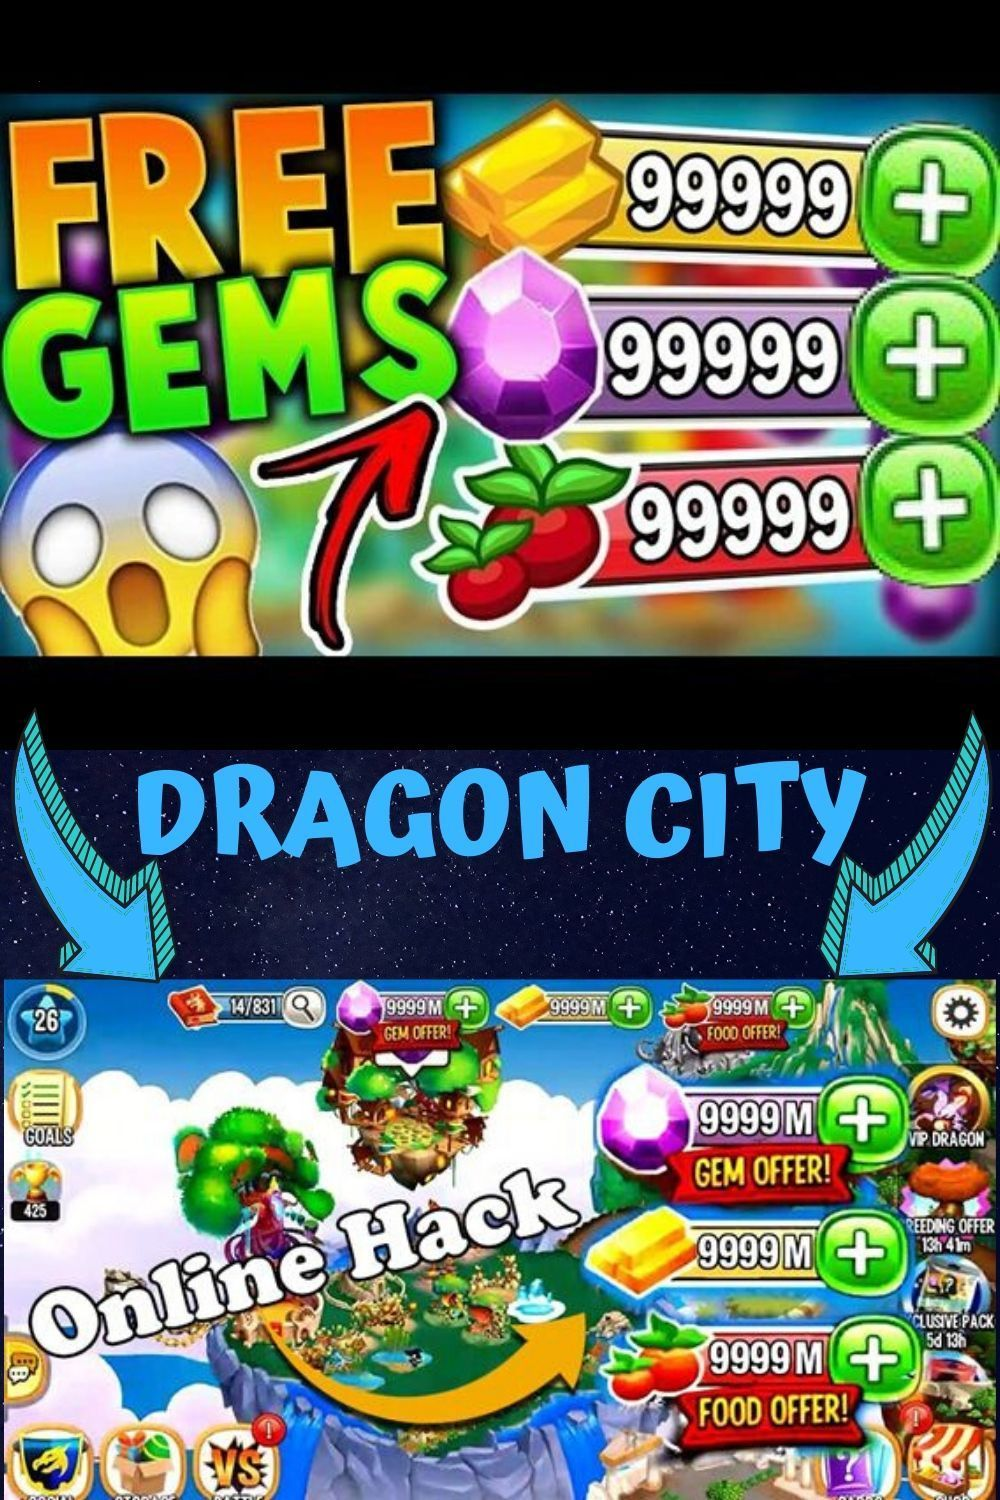 How To Get More Money In Dragon City